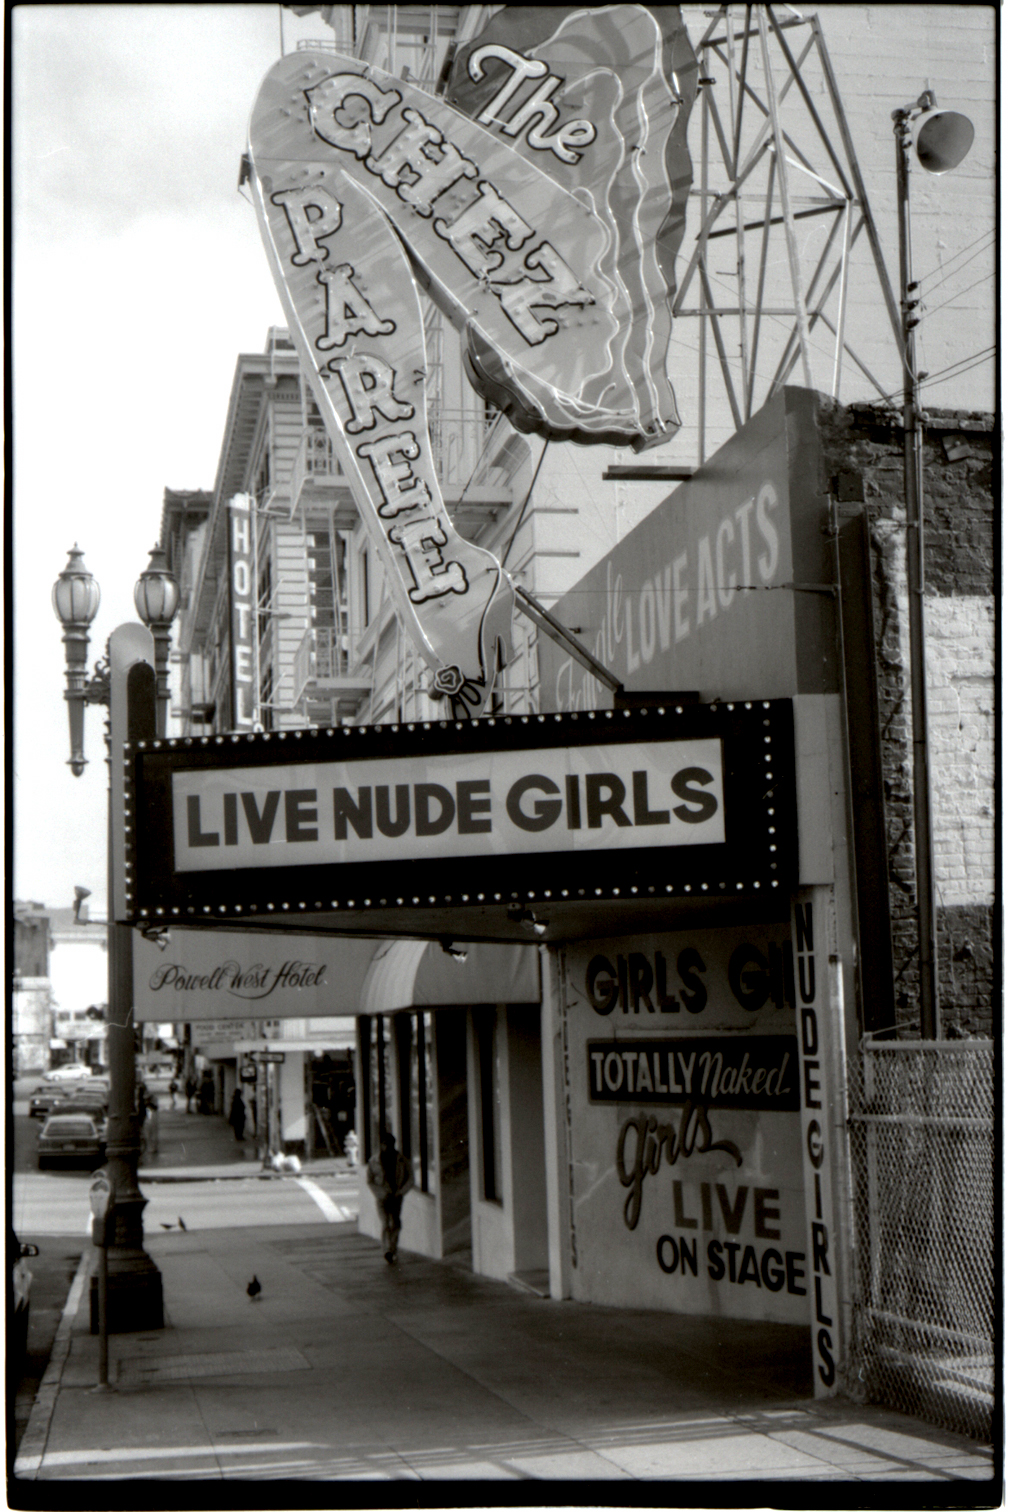 Live nude be